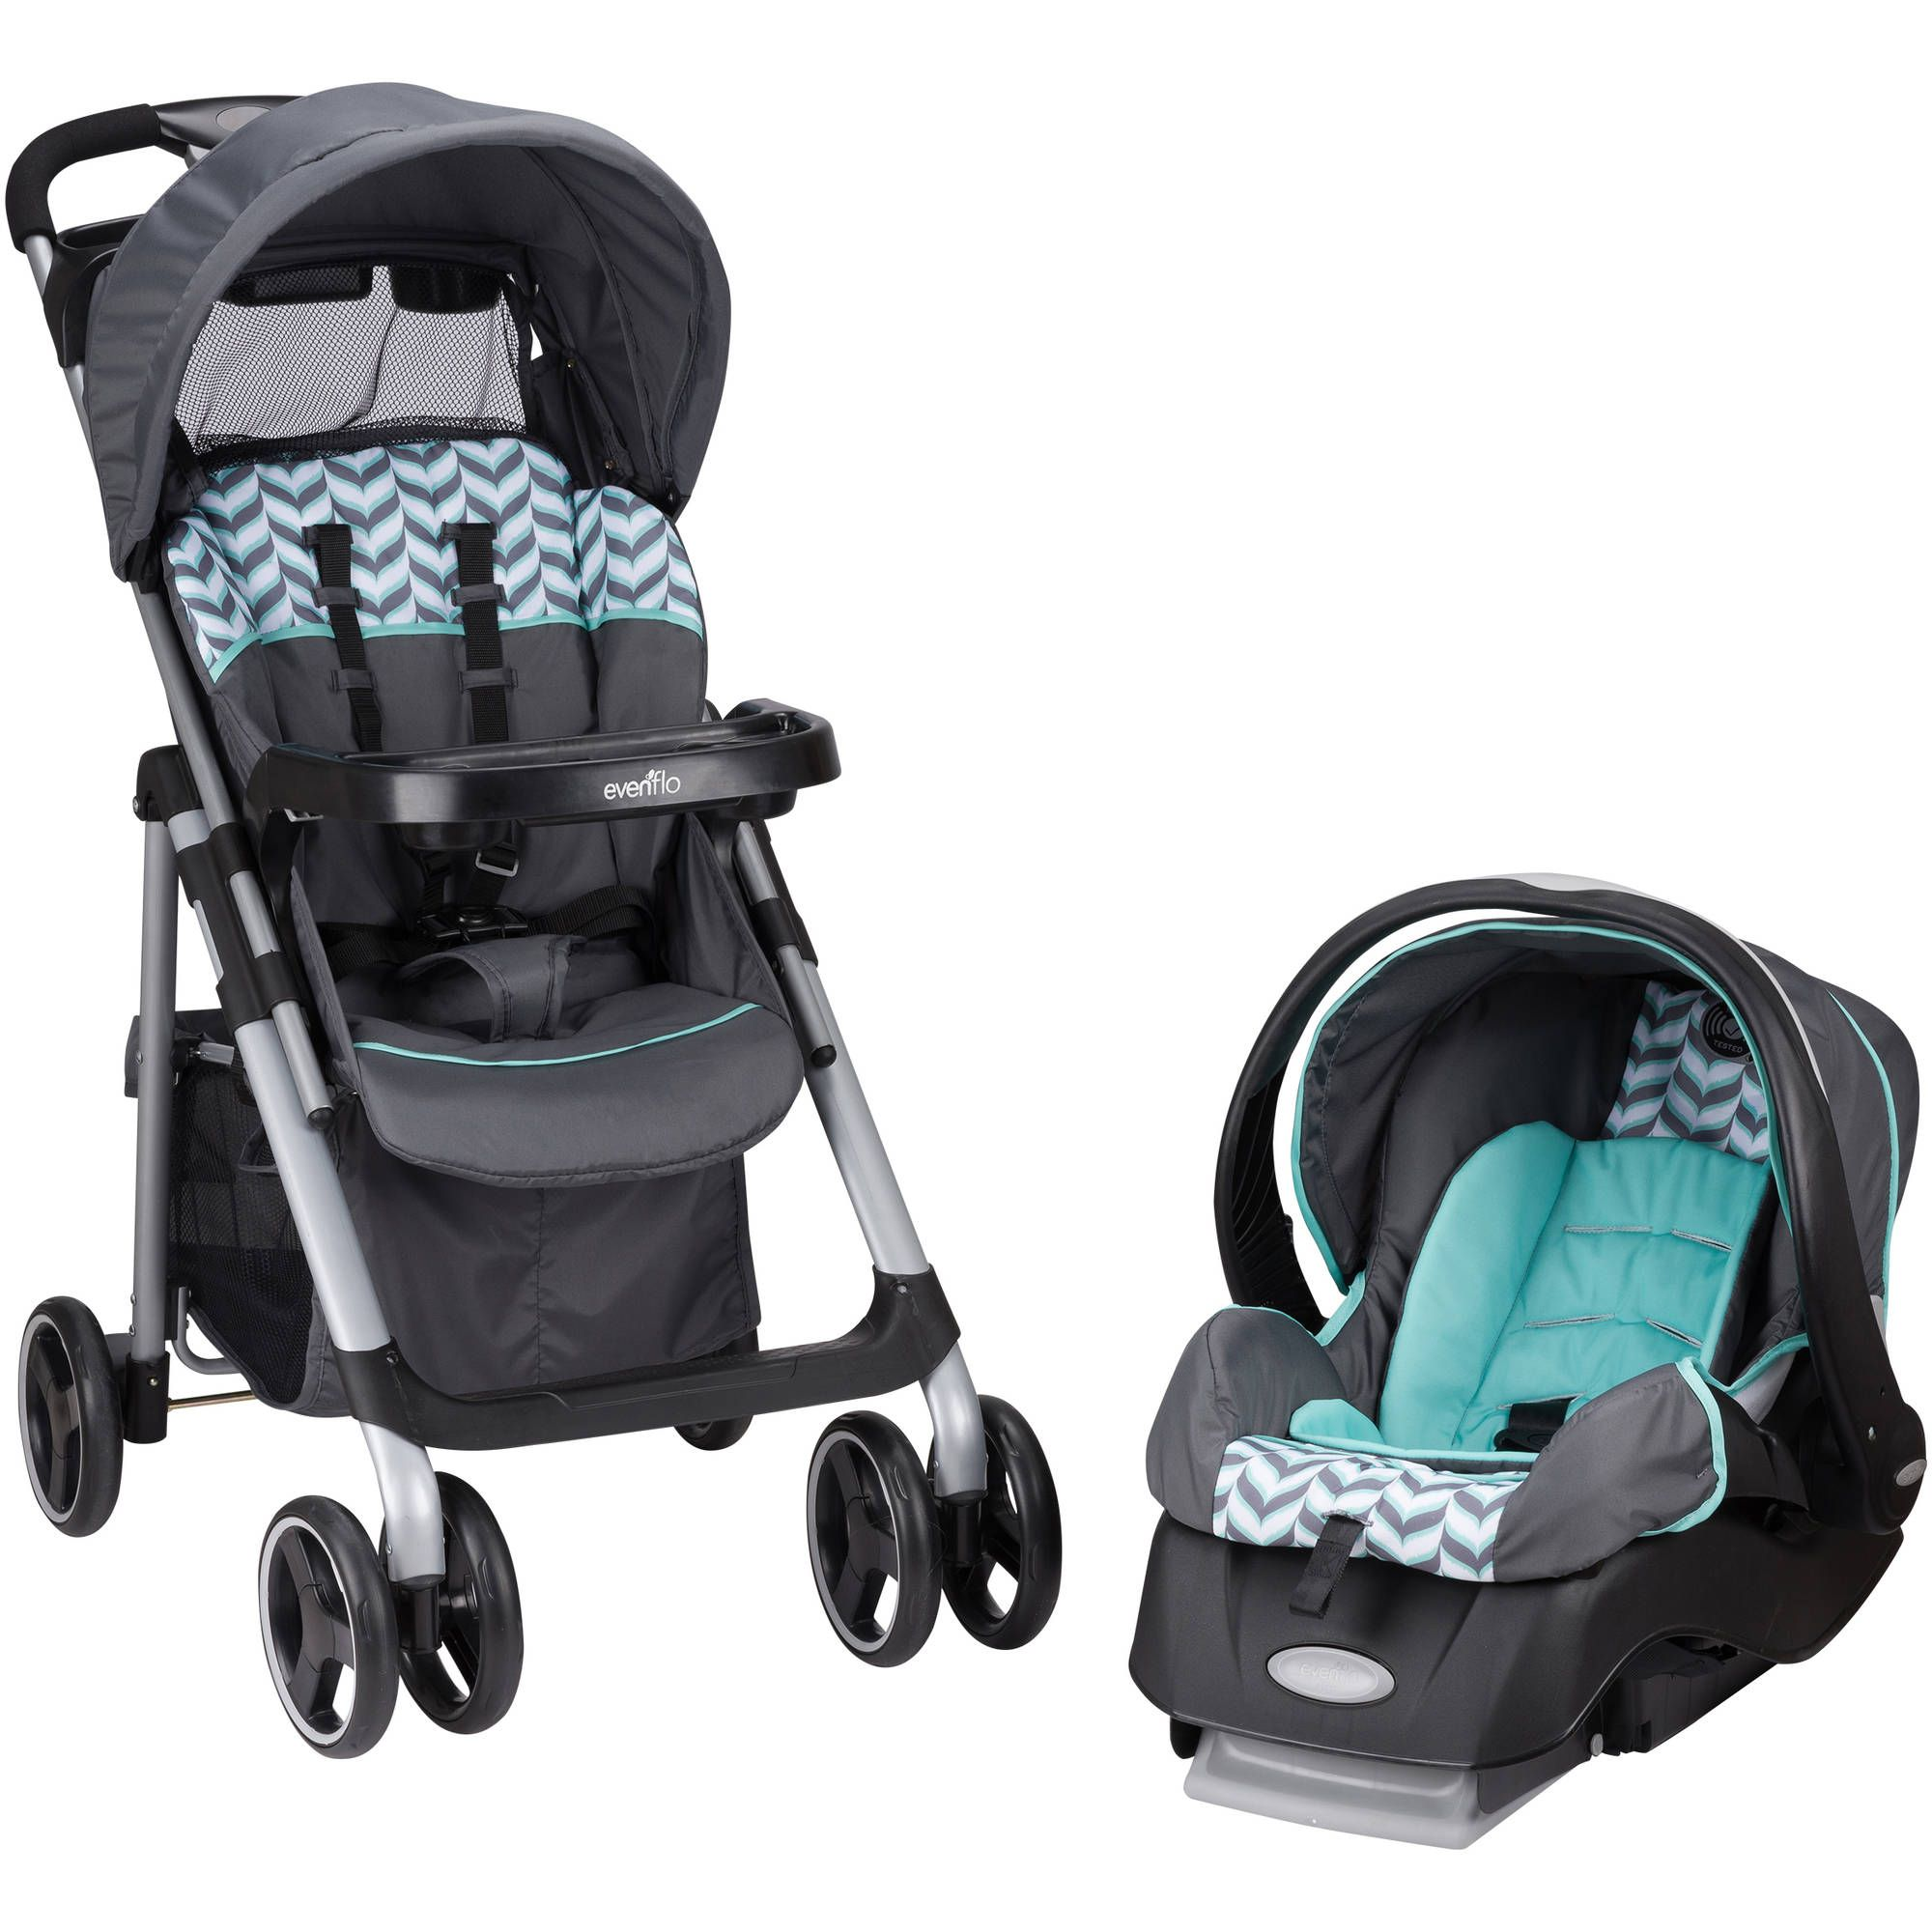 Evenflo Vive Travel System, Spearmint Spree Best baby